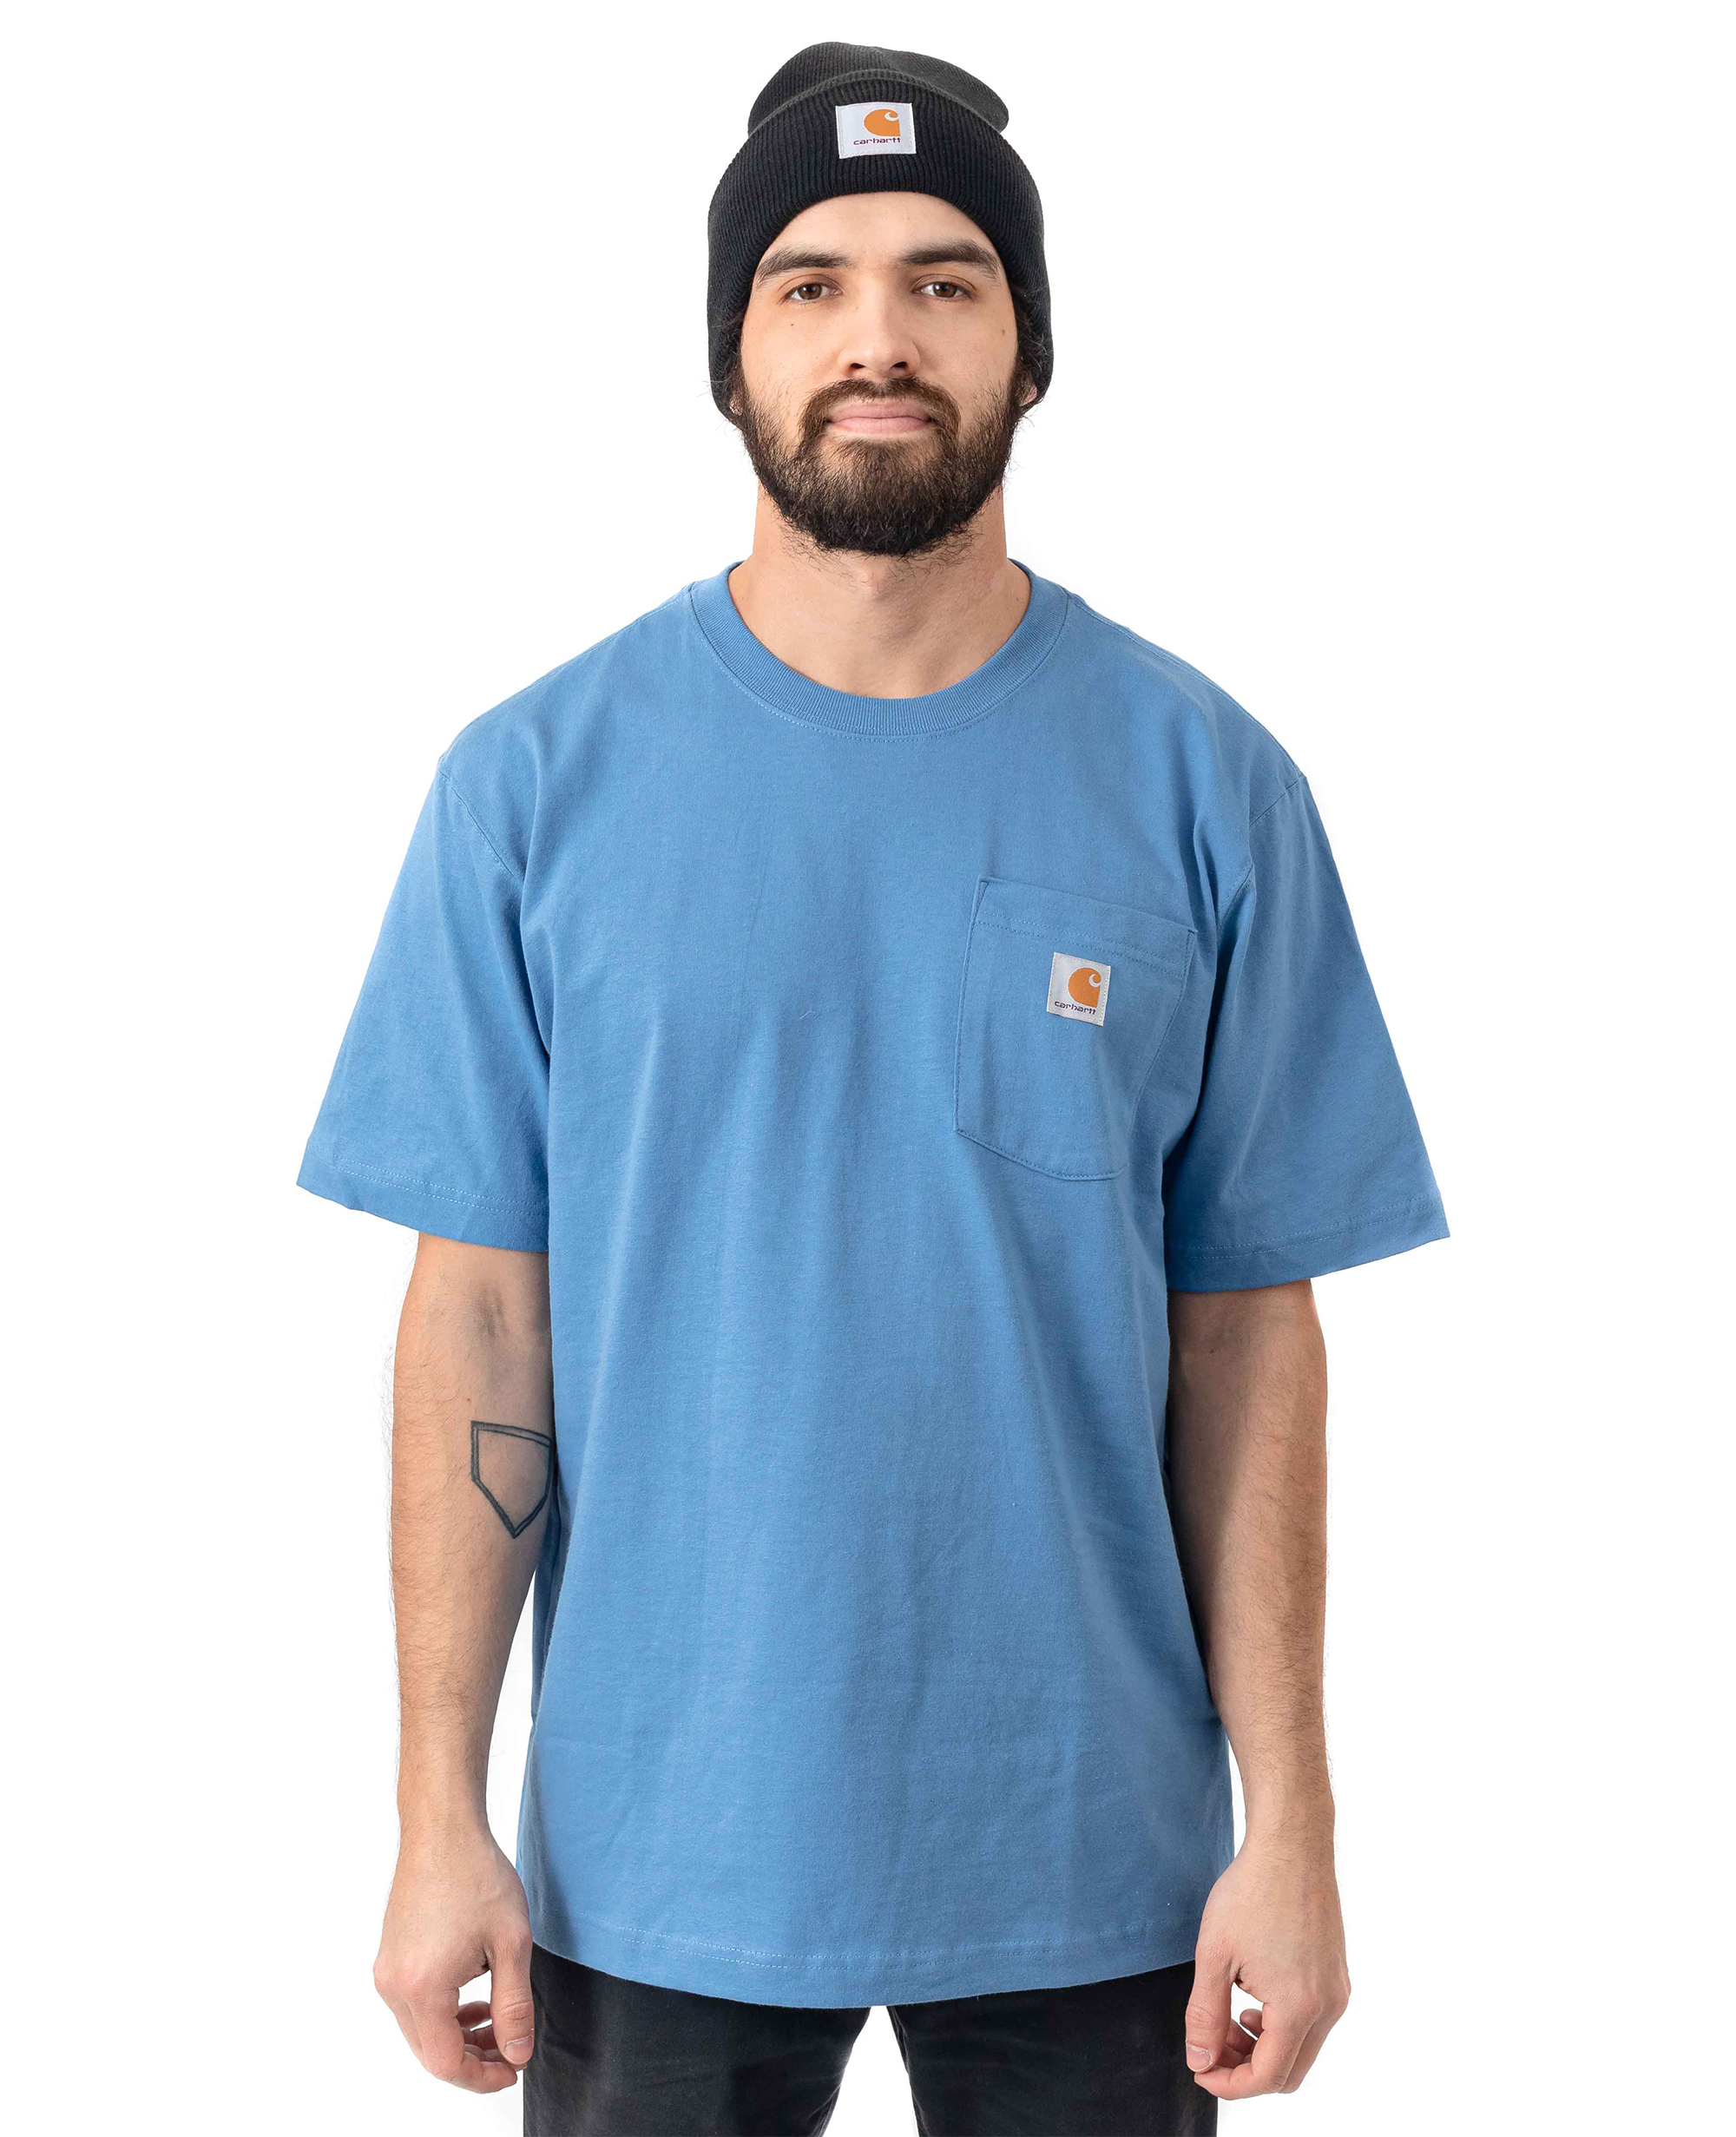 Heavyweight Pocket T-shirt in French Blue - T-Shirts - Carhartt WIP - BRANMA